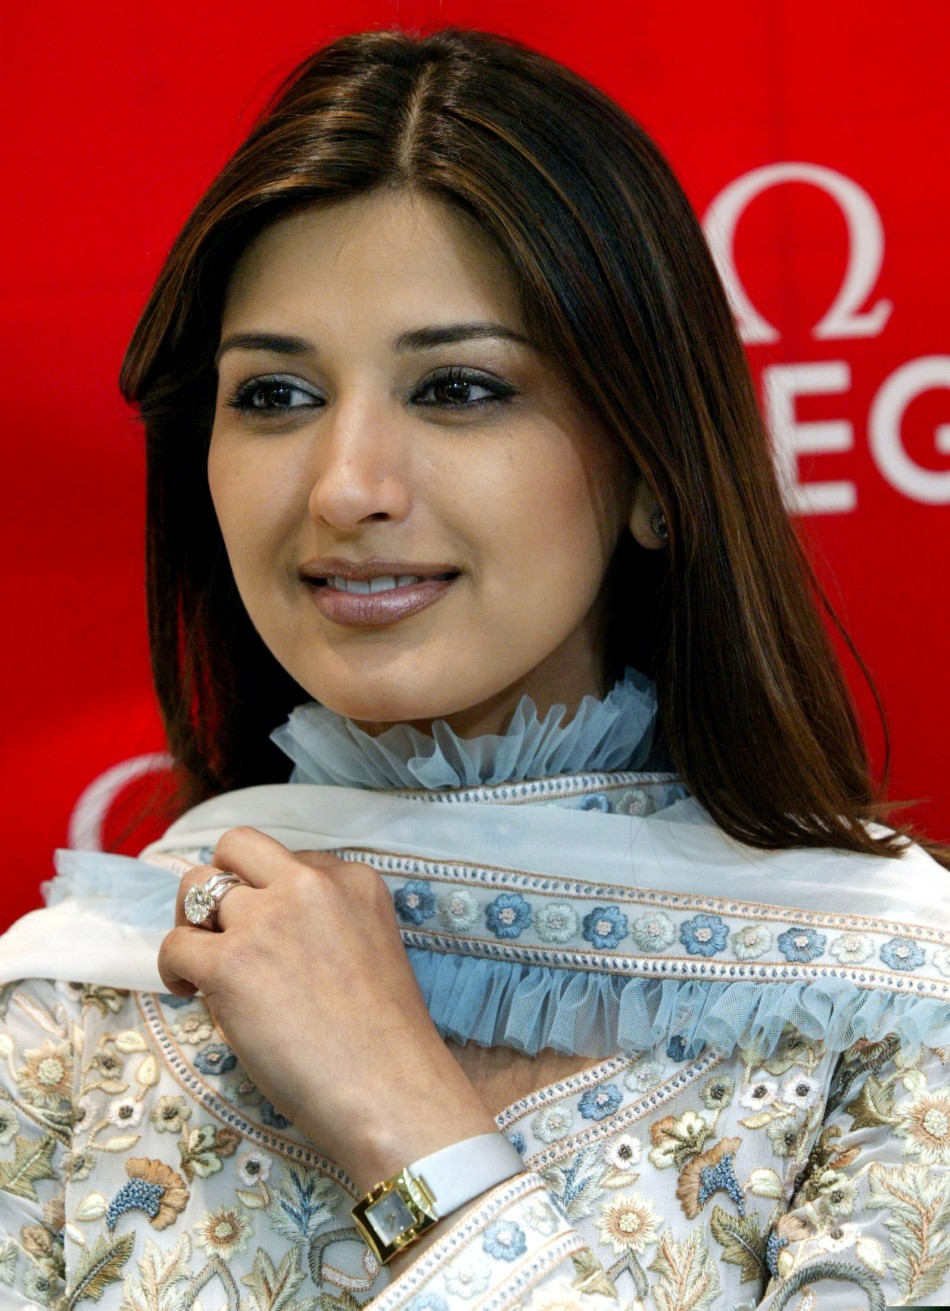 sonali bendre date of birth